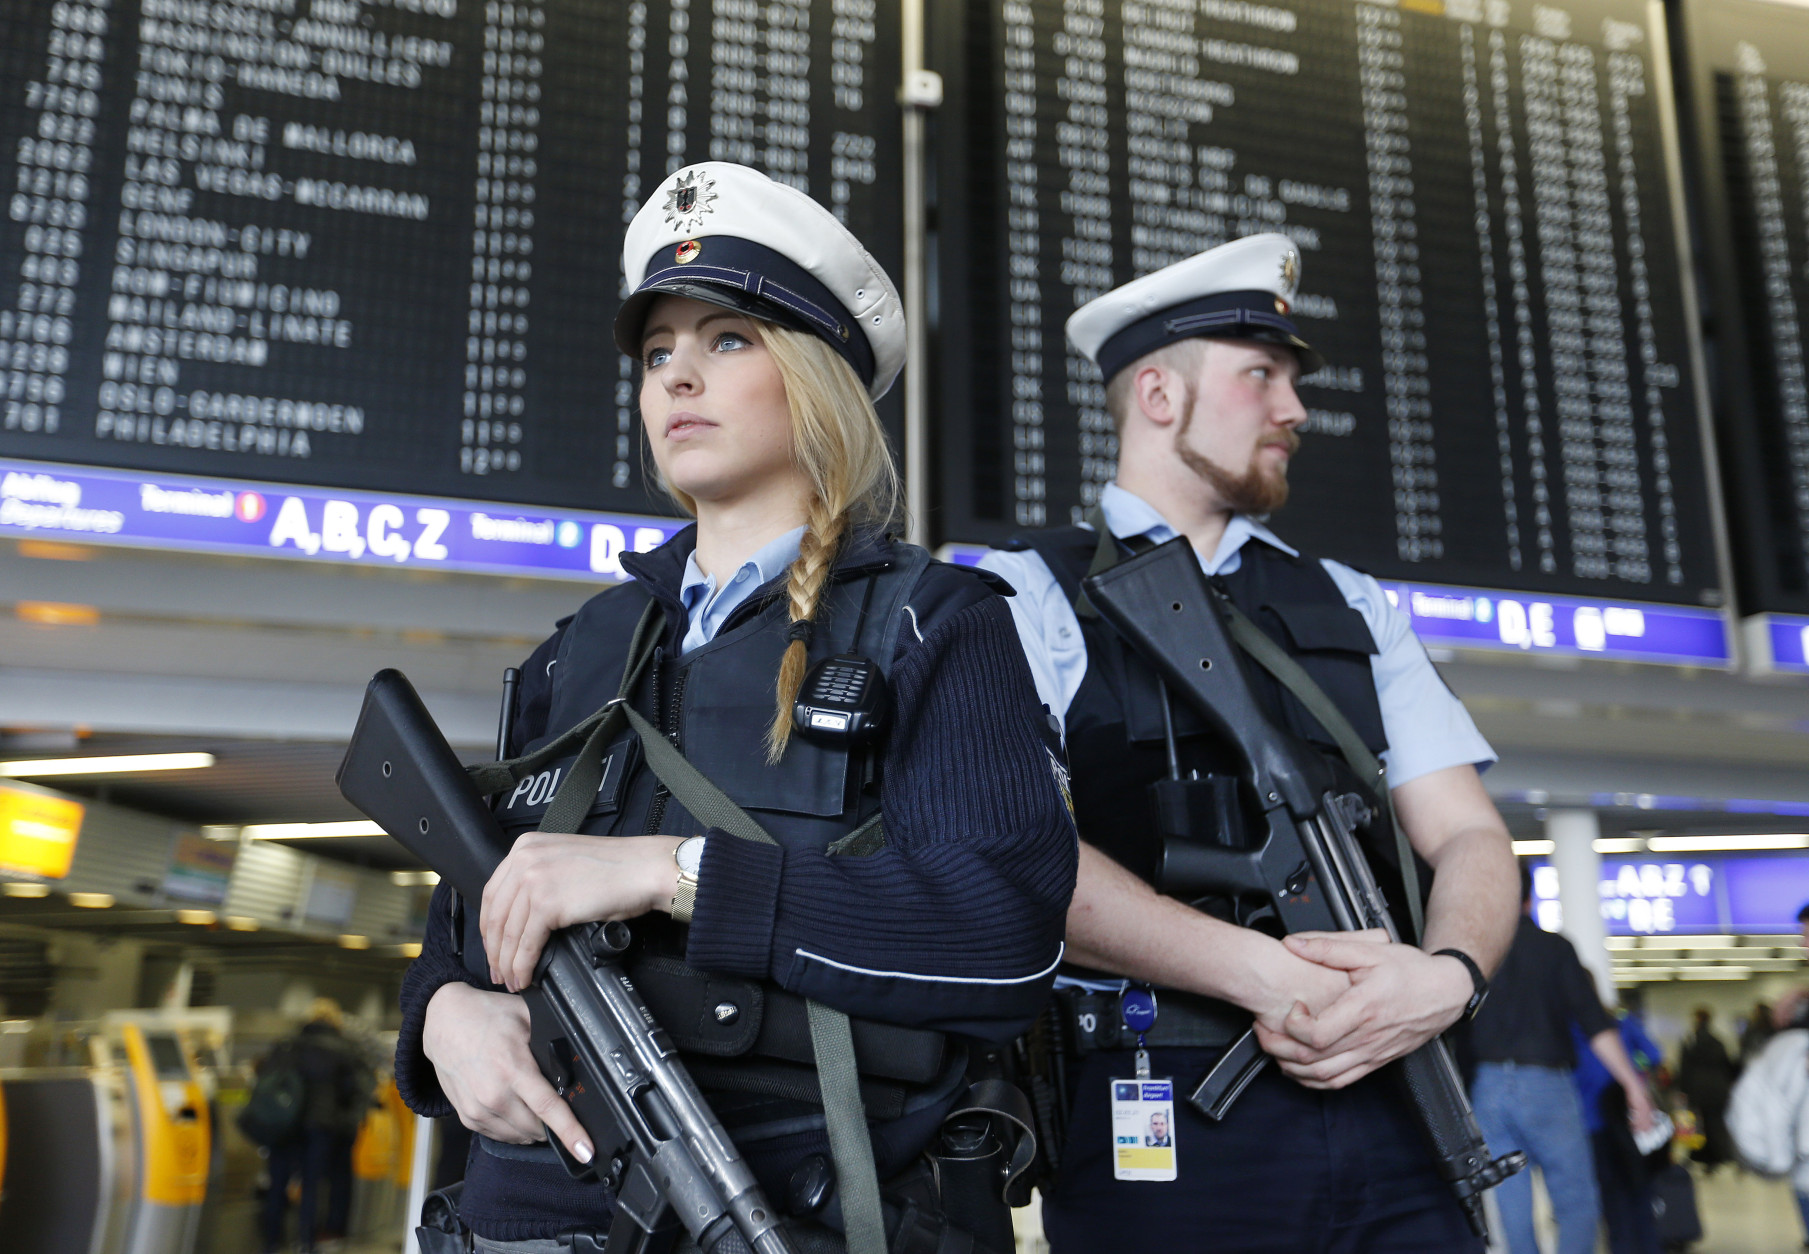 German police officers guard  a terminal of the airportthe  in Frankfurt, Germany, during tighter security measures  Tuesday, March 22, 2016, when various explosions hit the  Belgian capital  Brussels killing several people. (AP Photo/Michael Probst)